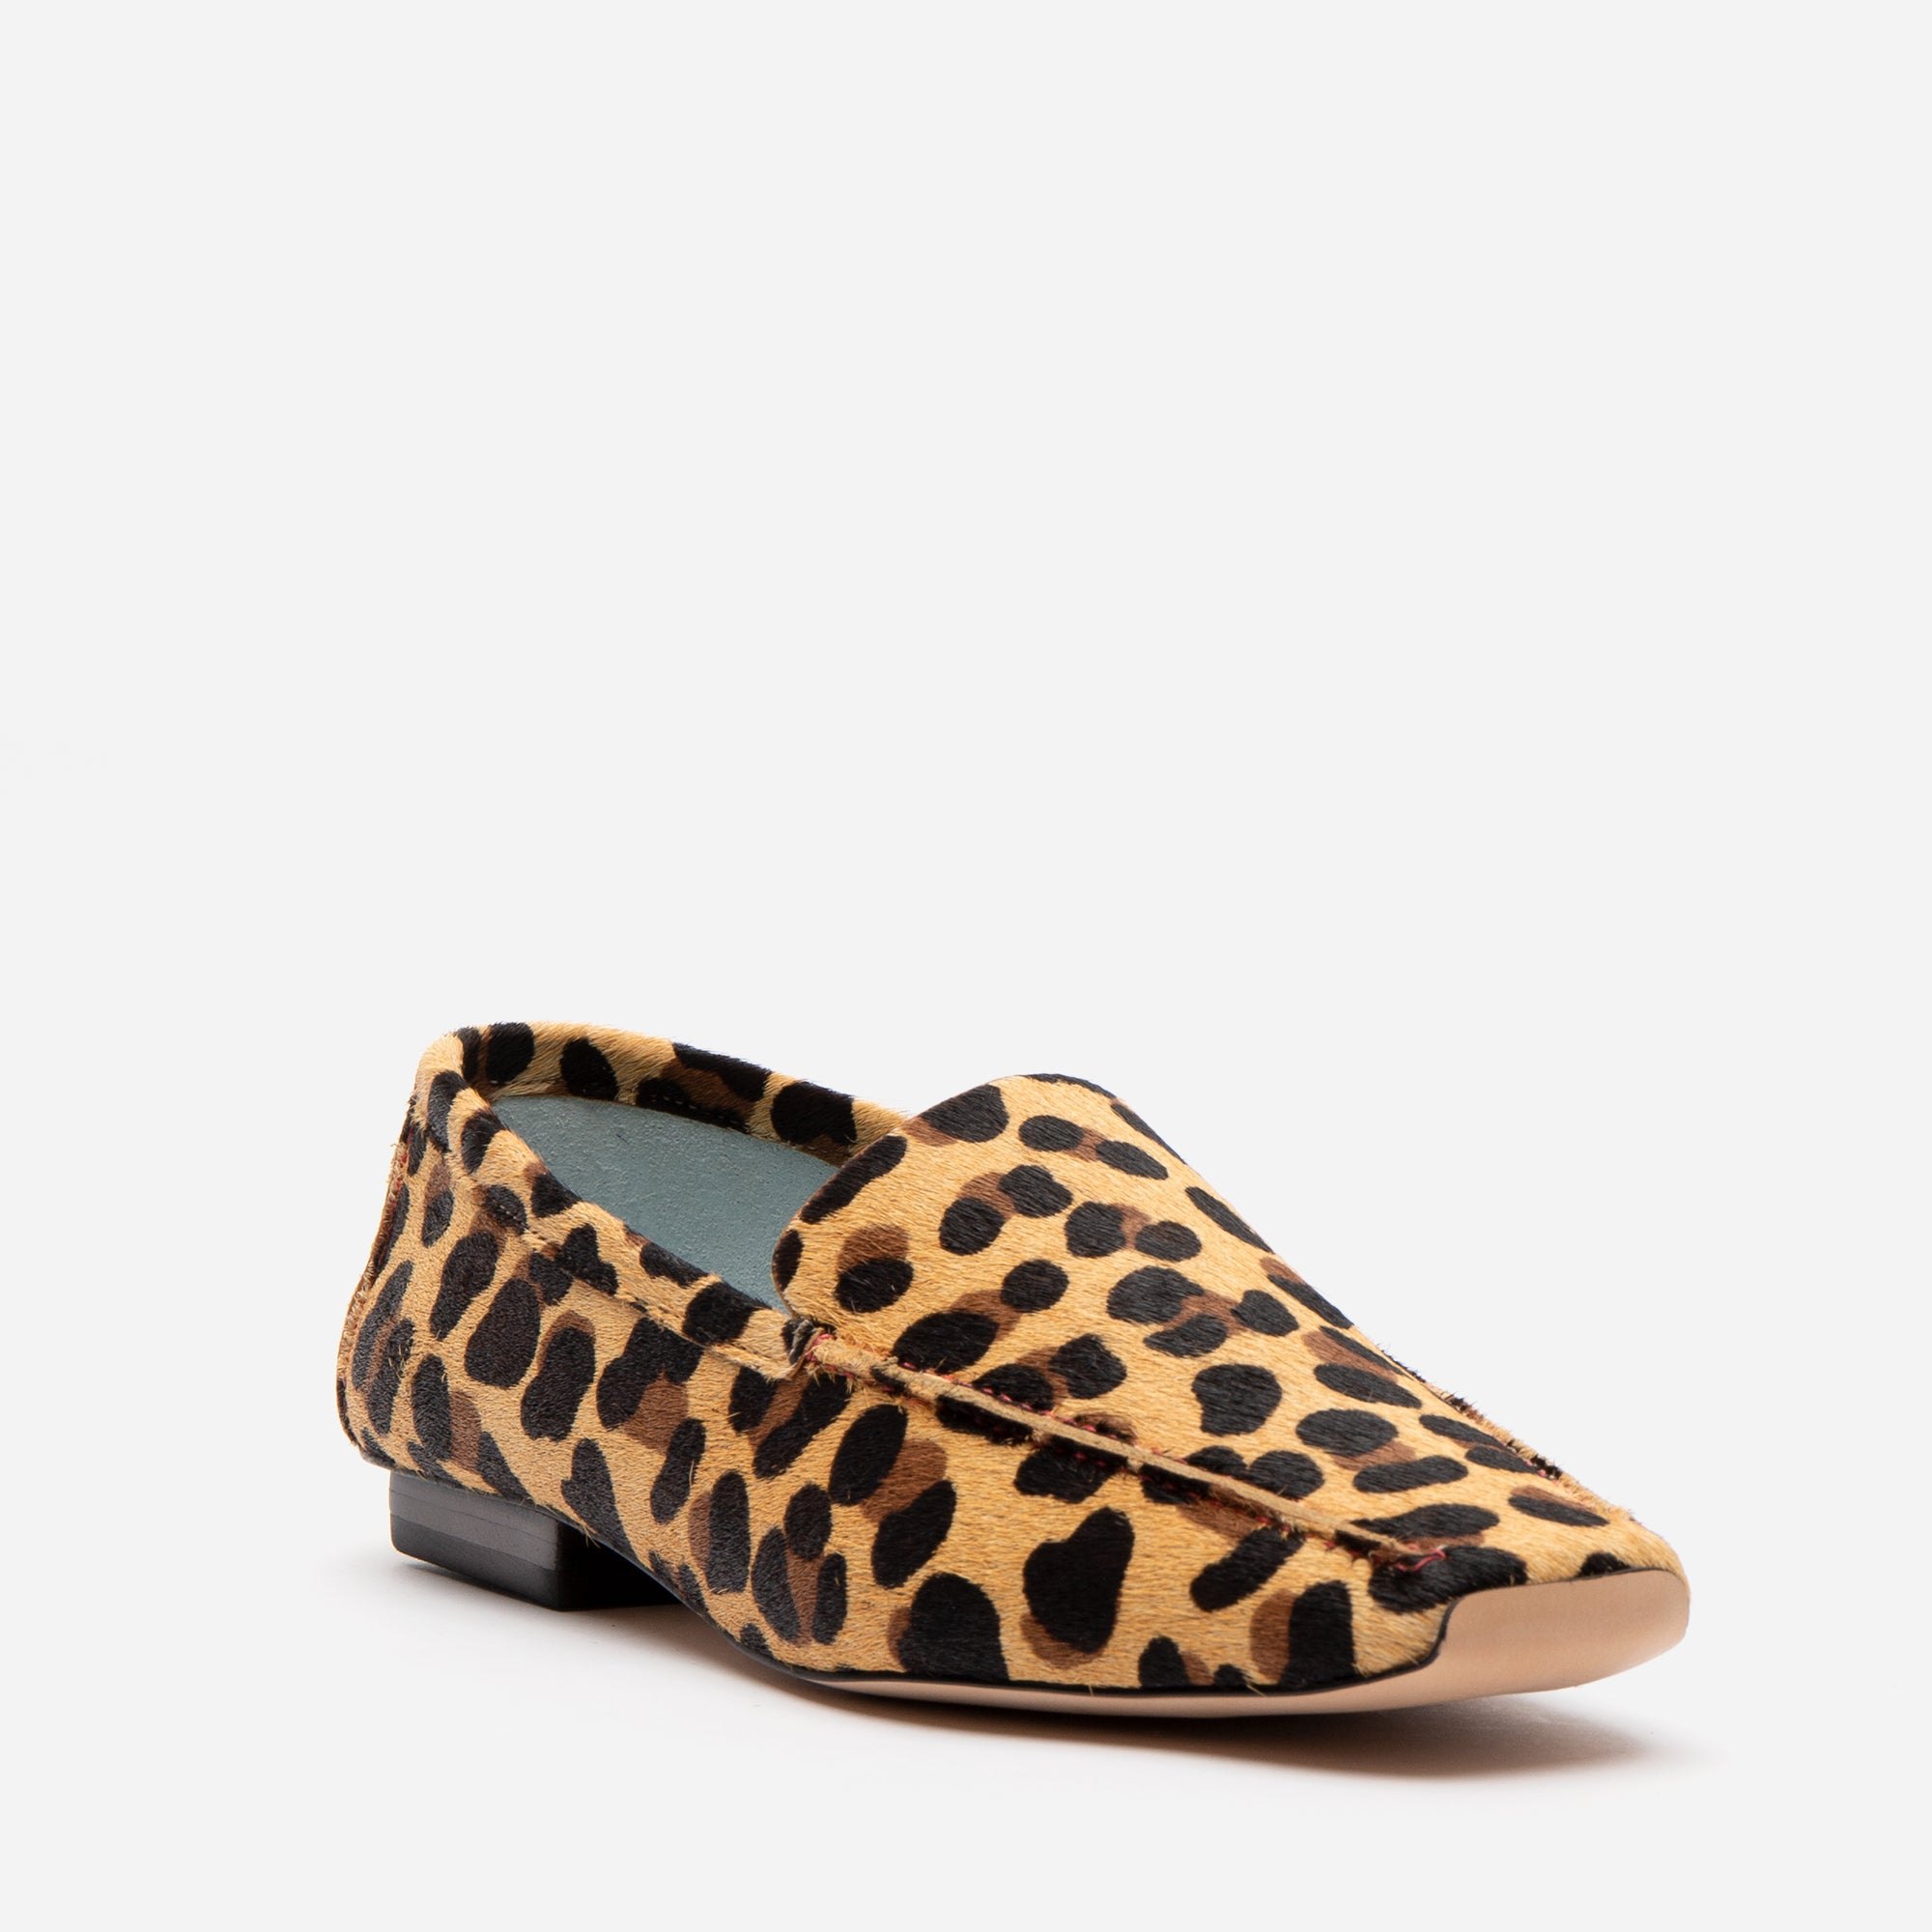 Elyce Loafers Leopard Printed Haircalf